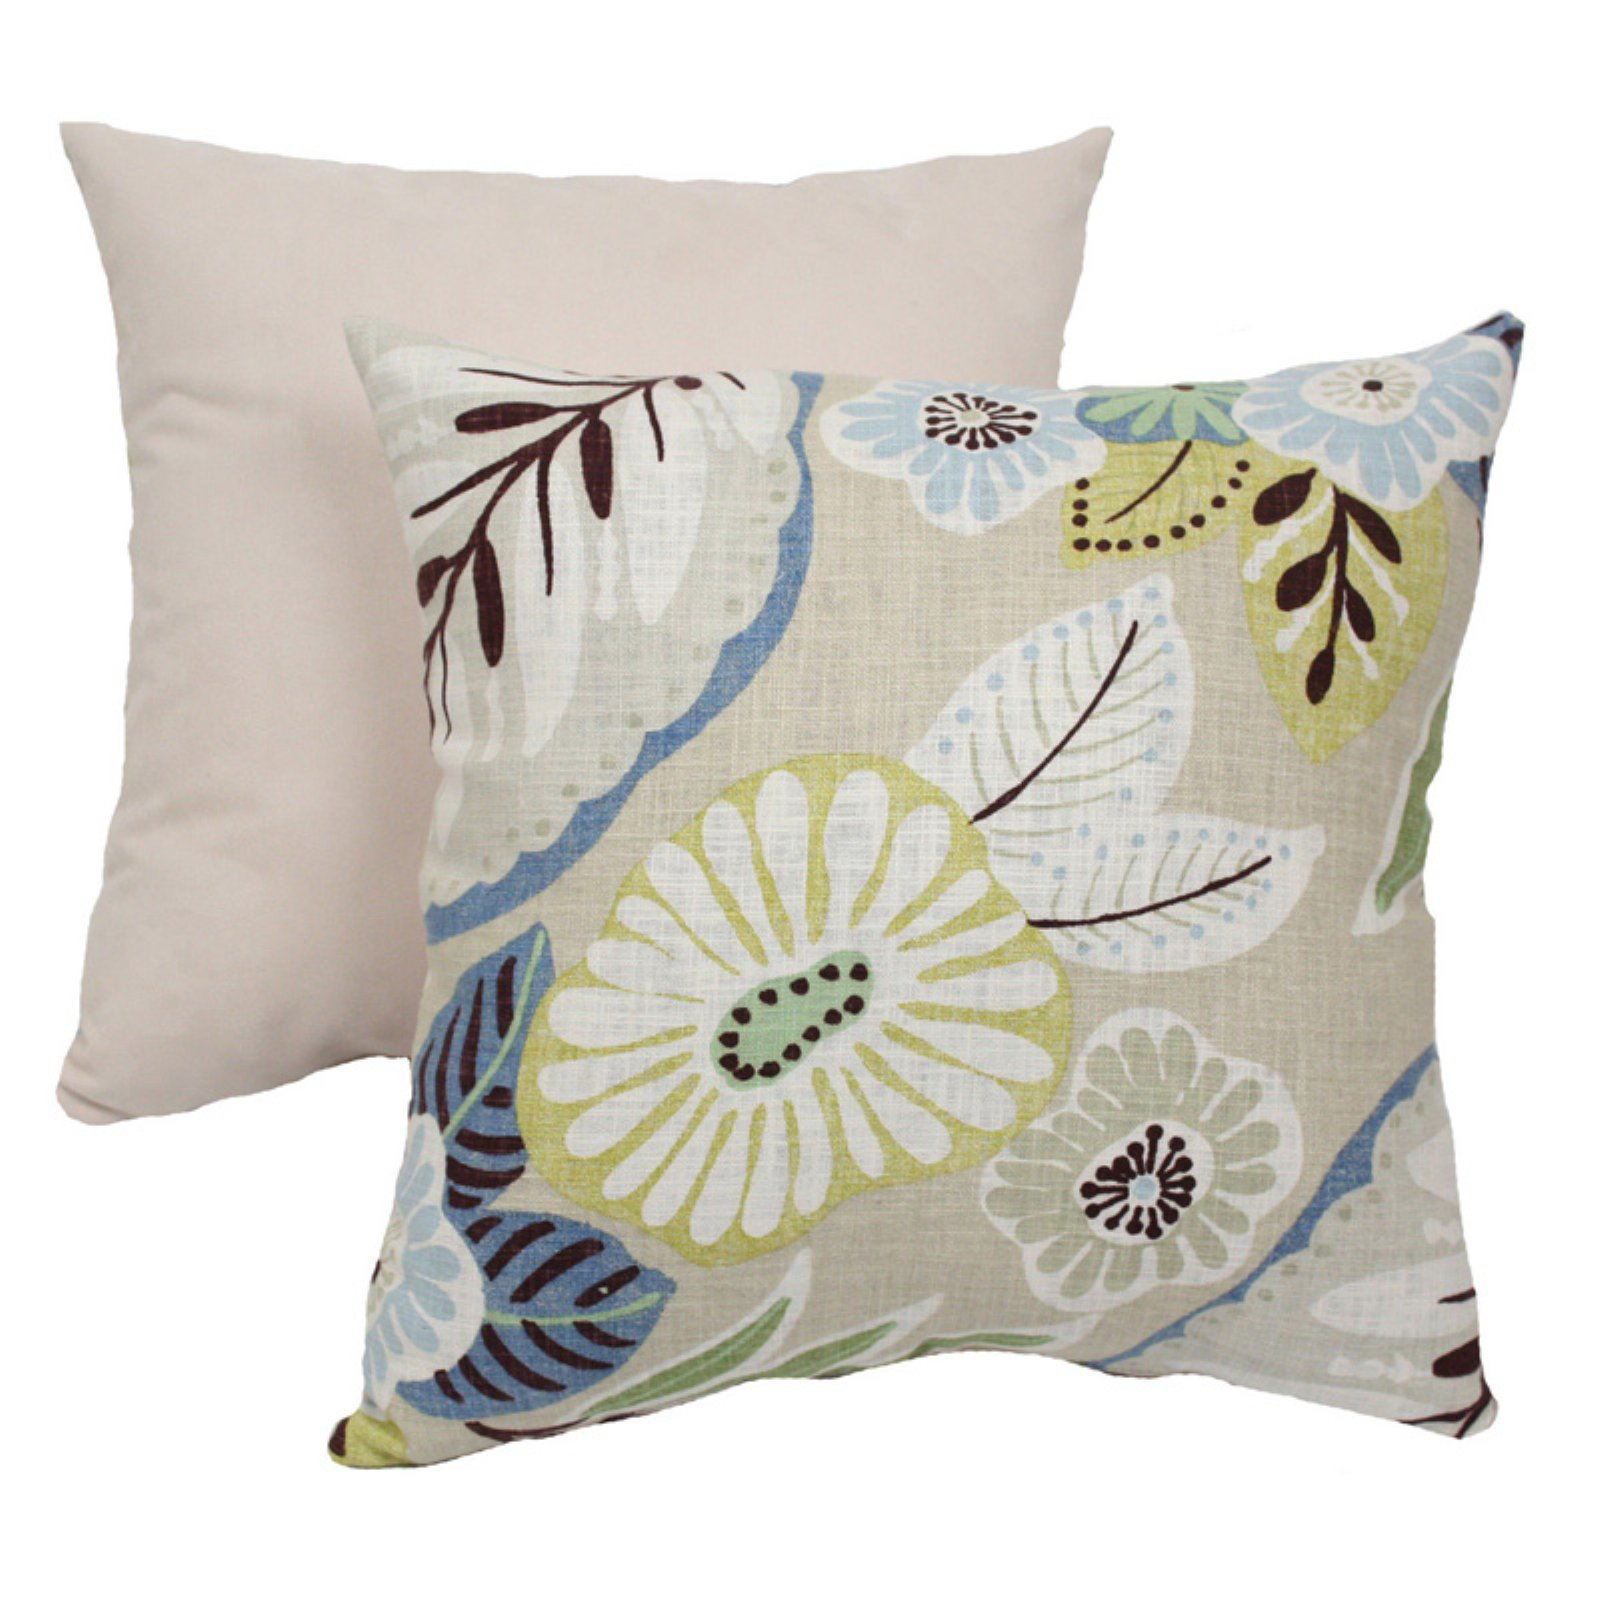 Pillow Perfect Decorative Beige and Blue Tropical Floral Square Toss Pillow by Pillow Perfect